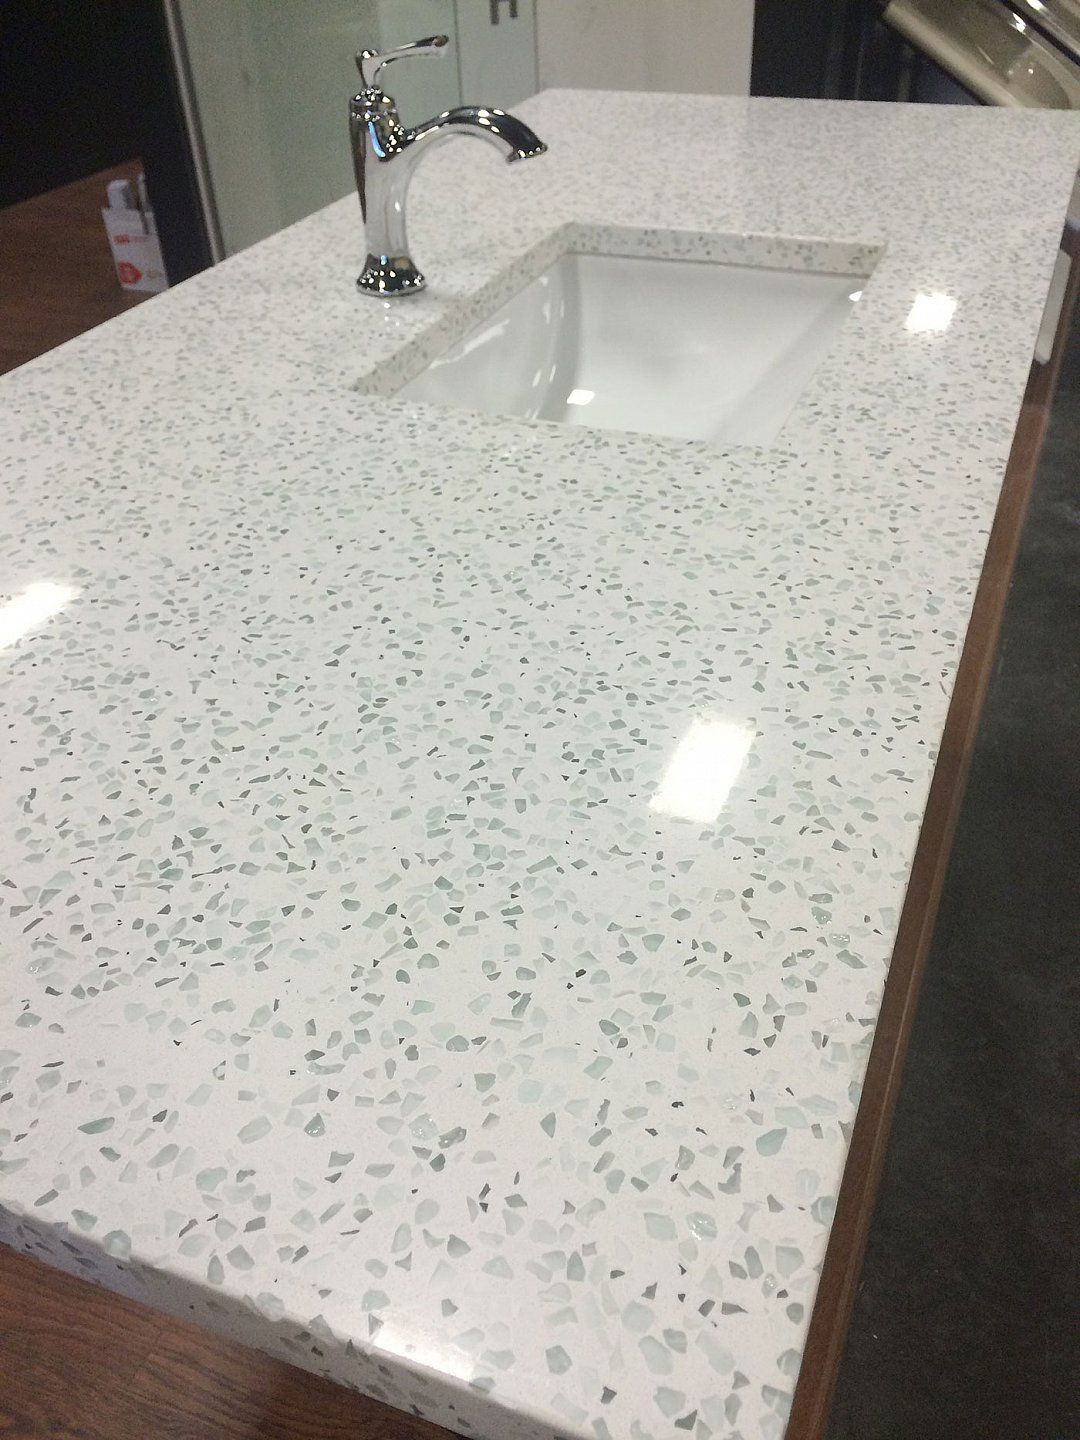 Chipped Quartz Countertop Repair I Am Intrigued By Recycled Glass Countertops They Are A